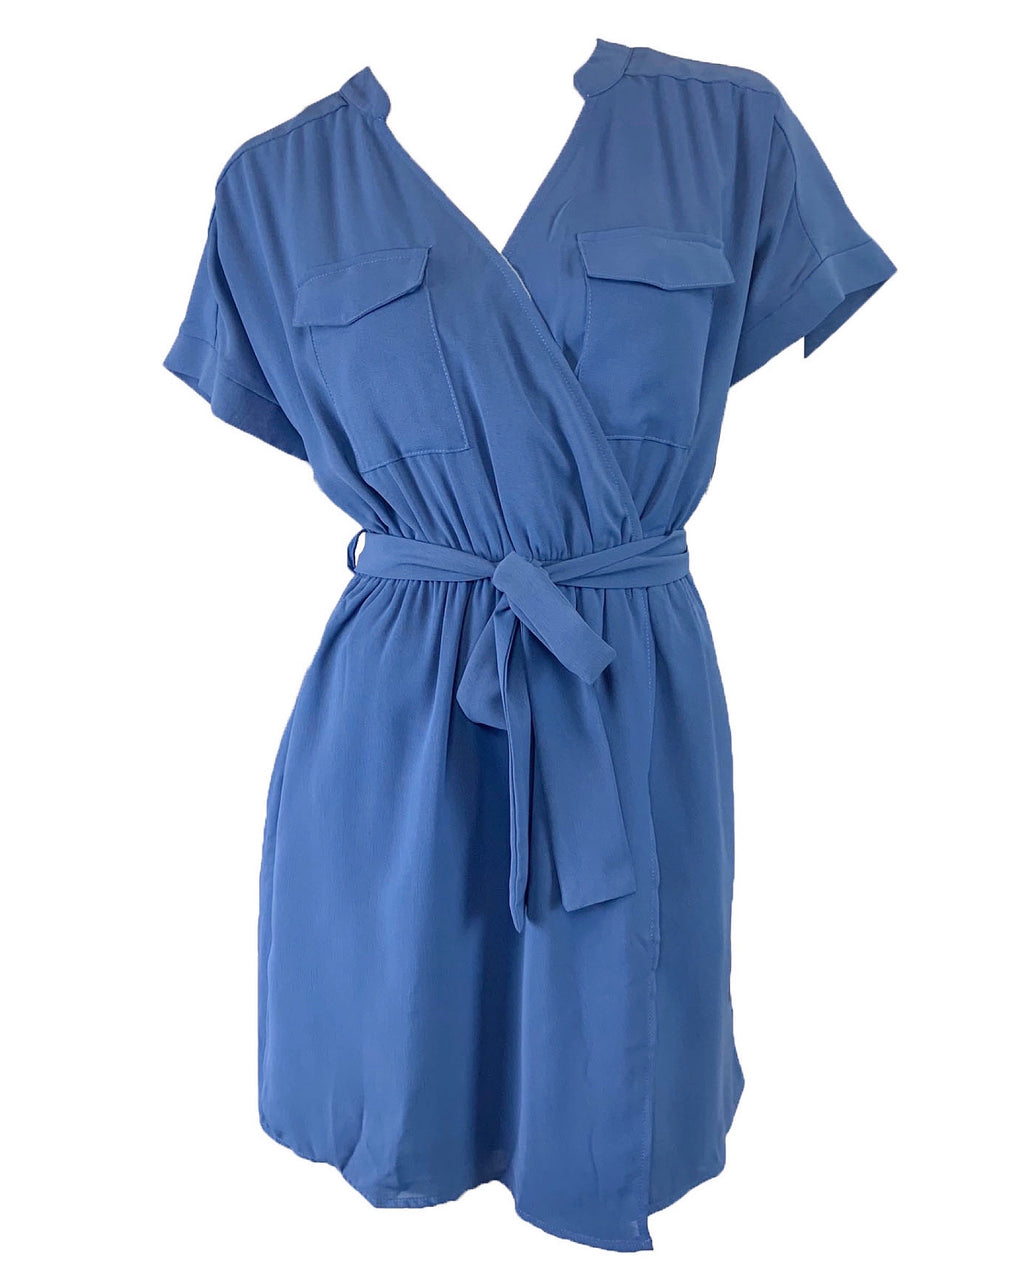 Sweet Talkin' Dress in Vintage Blue